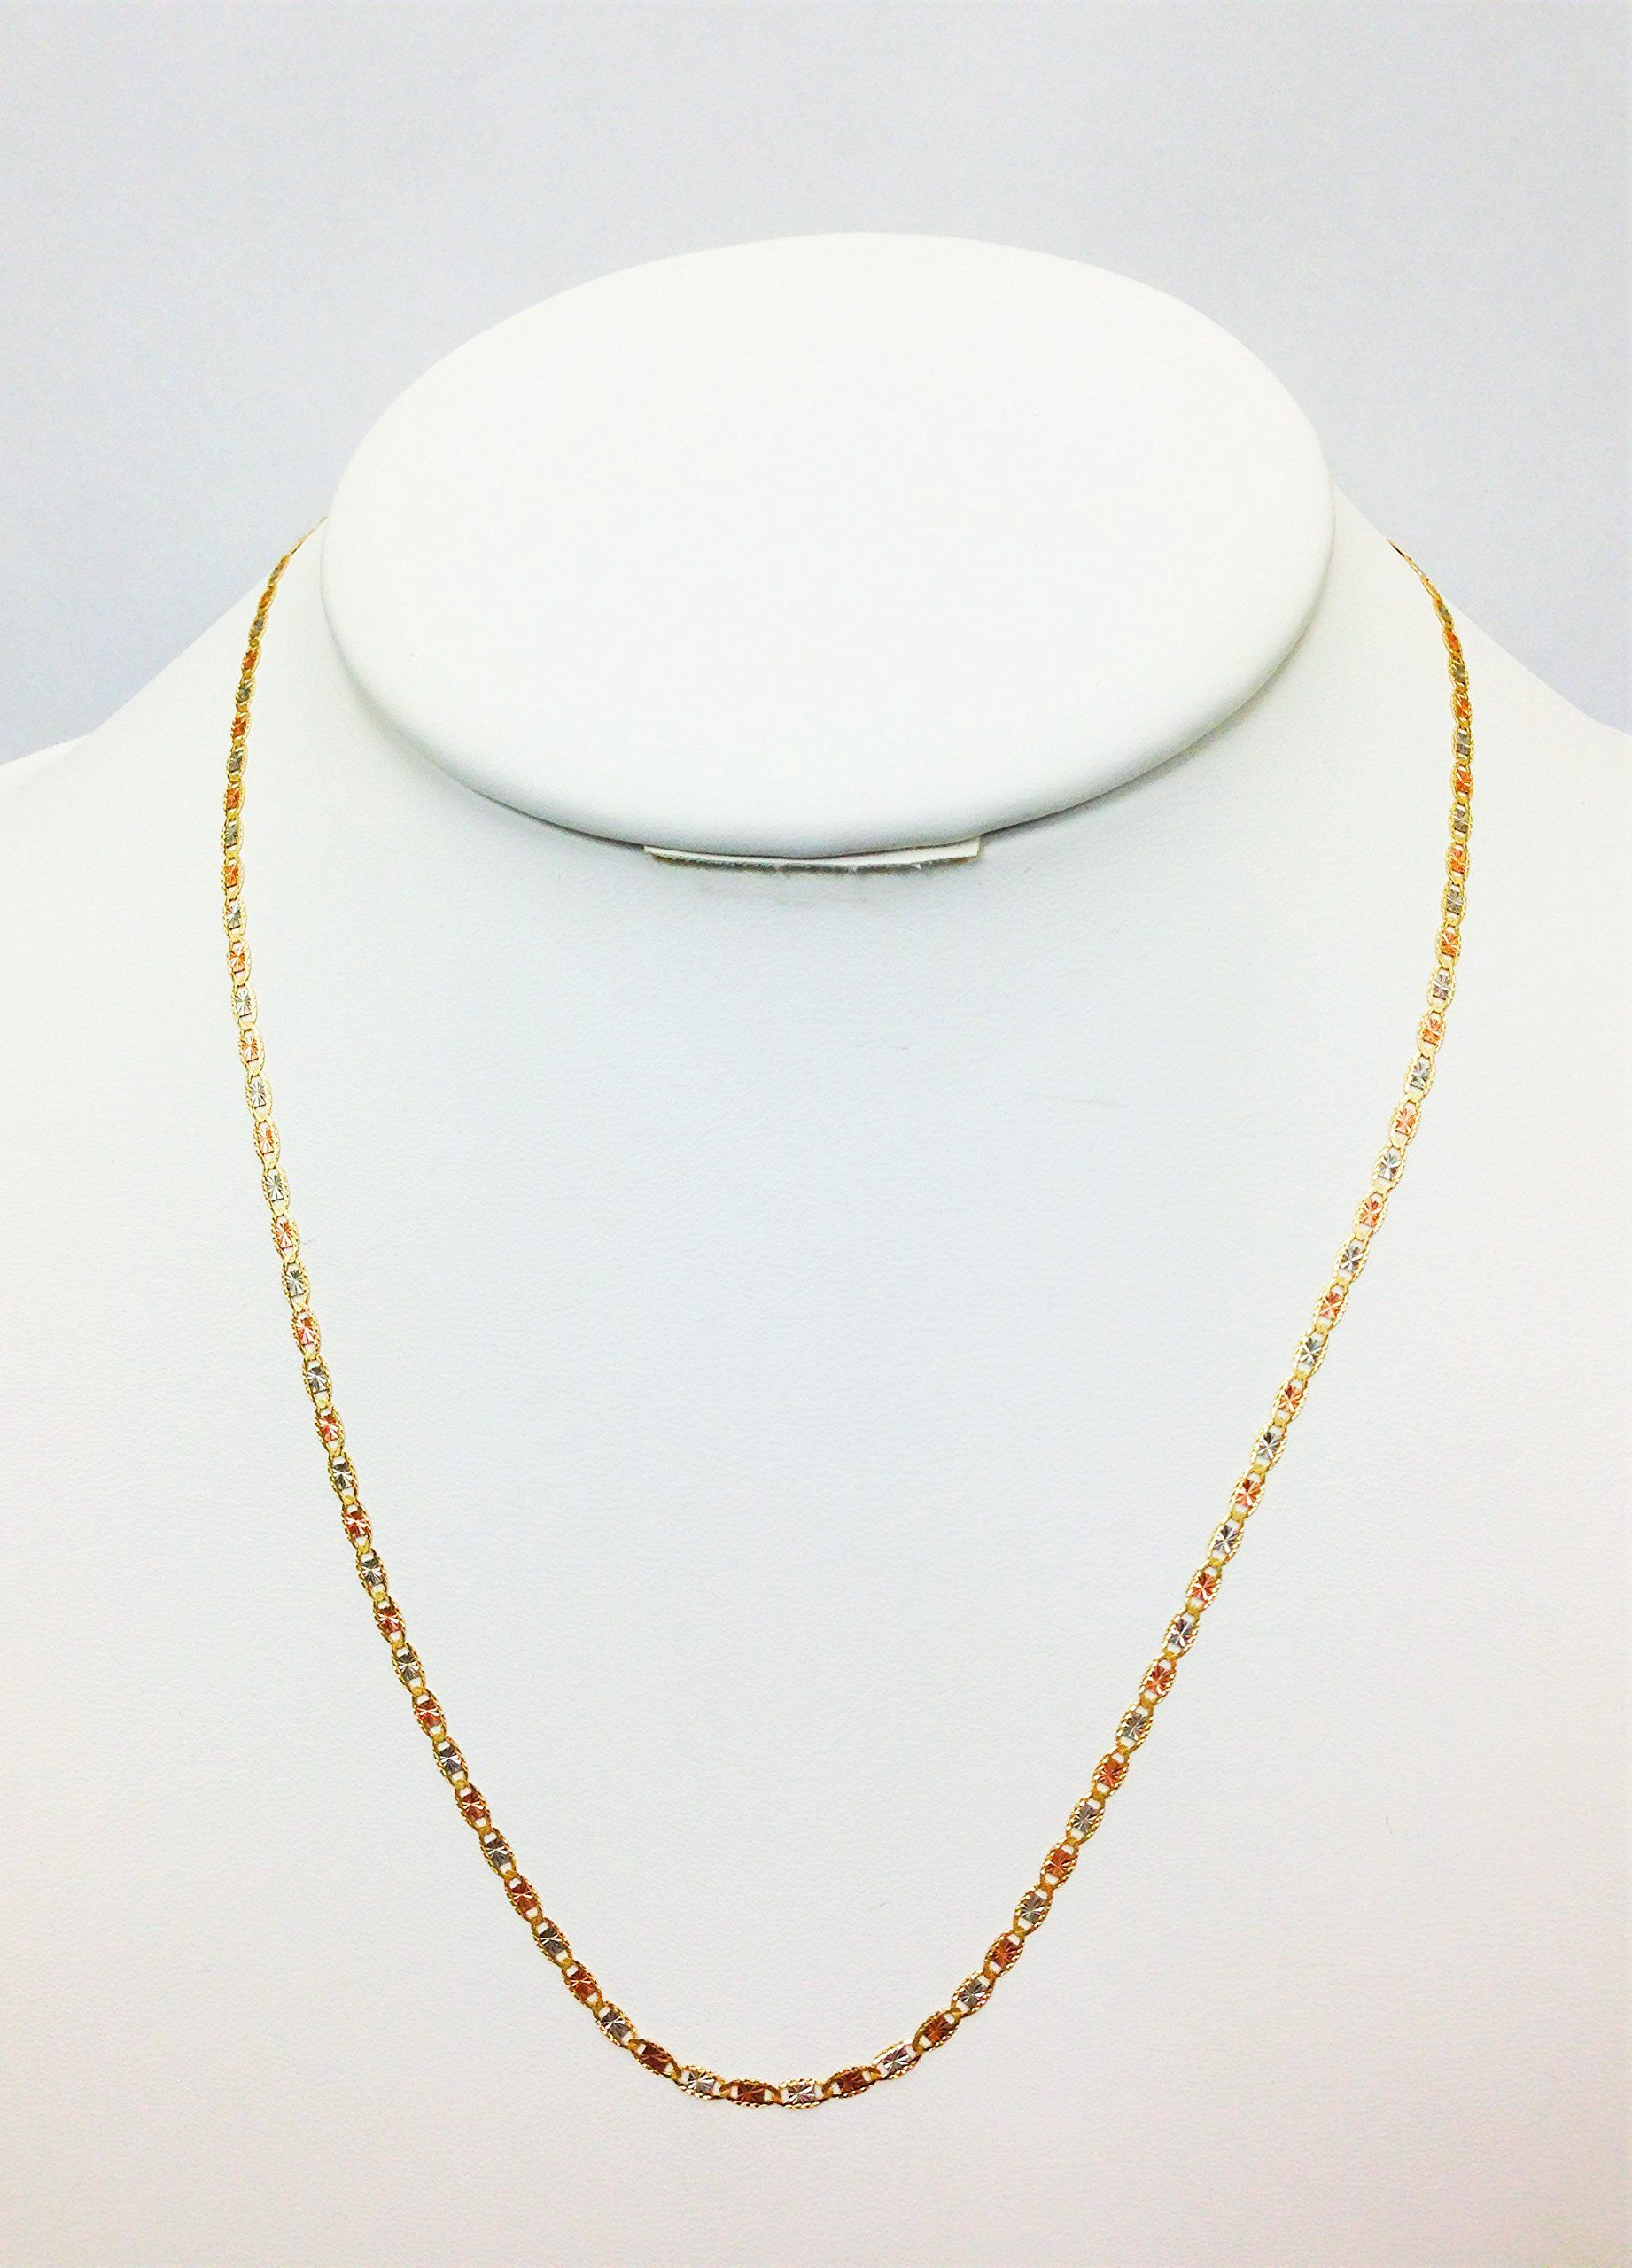 Mcs Jewelry 10 Karat Three Tone Yellow Gold White Gold Rose Gold Necklace 16 Affiliate Mcs Necklace Chain Lengths Chains Necklace Rose Gold Necklace